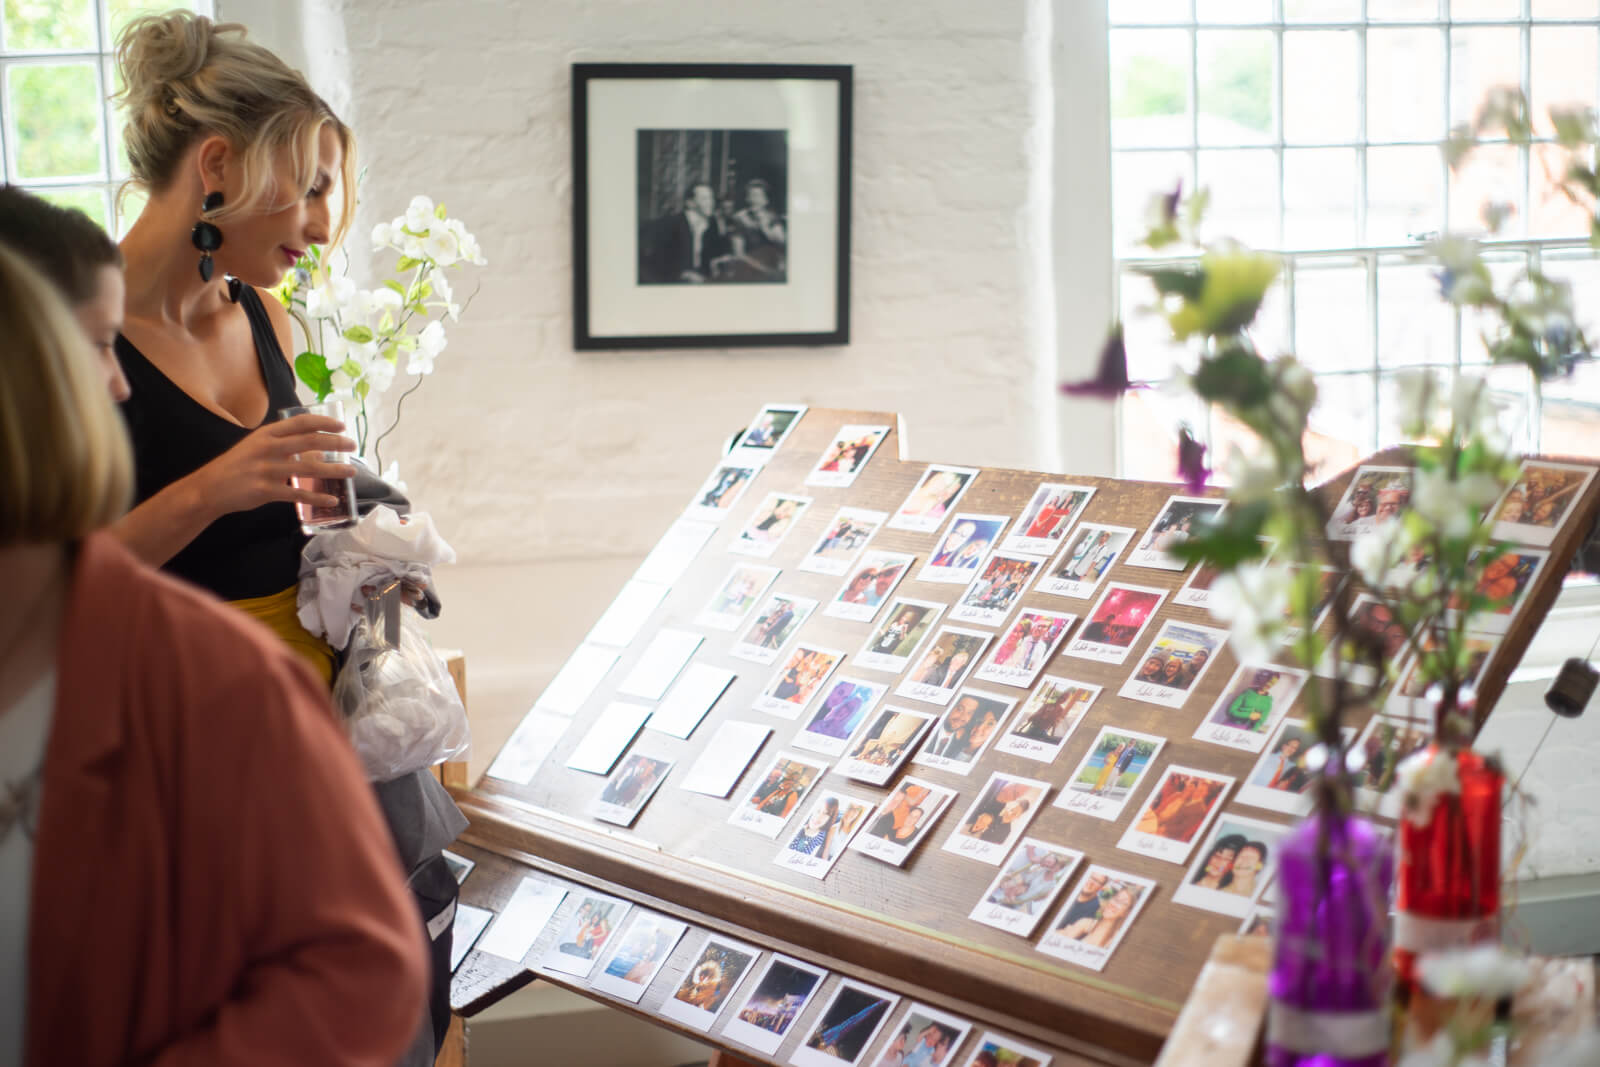 Guests look at a seating plan made of polaroid photos on a draftboard